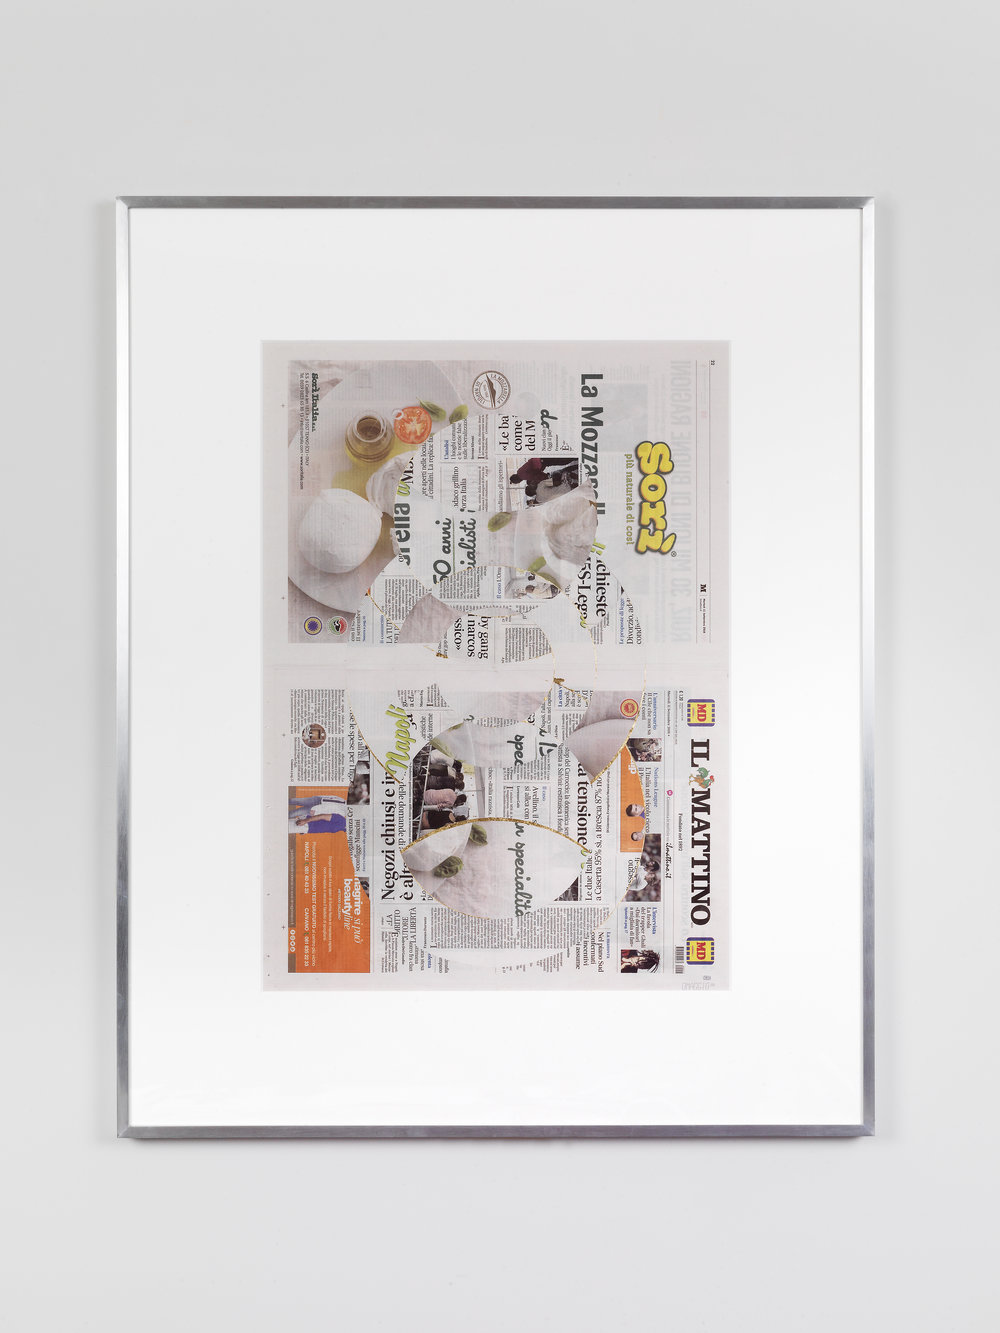 Il Mattino, Martedi 11 Settembre 2018    2018   Newspaper, tape, and 22 karat gold leaf  39 3/8 x 31 1/2 inches   Blind Collages, 2017–